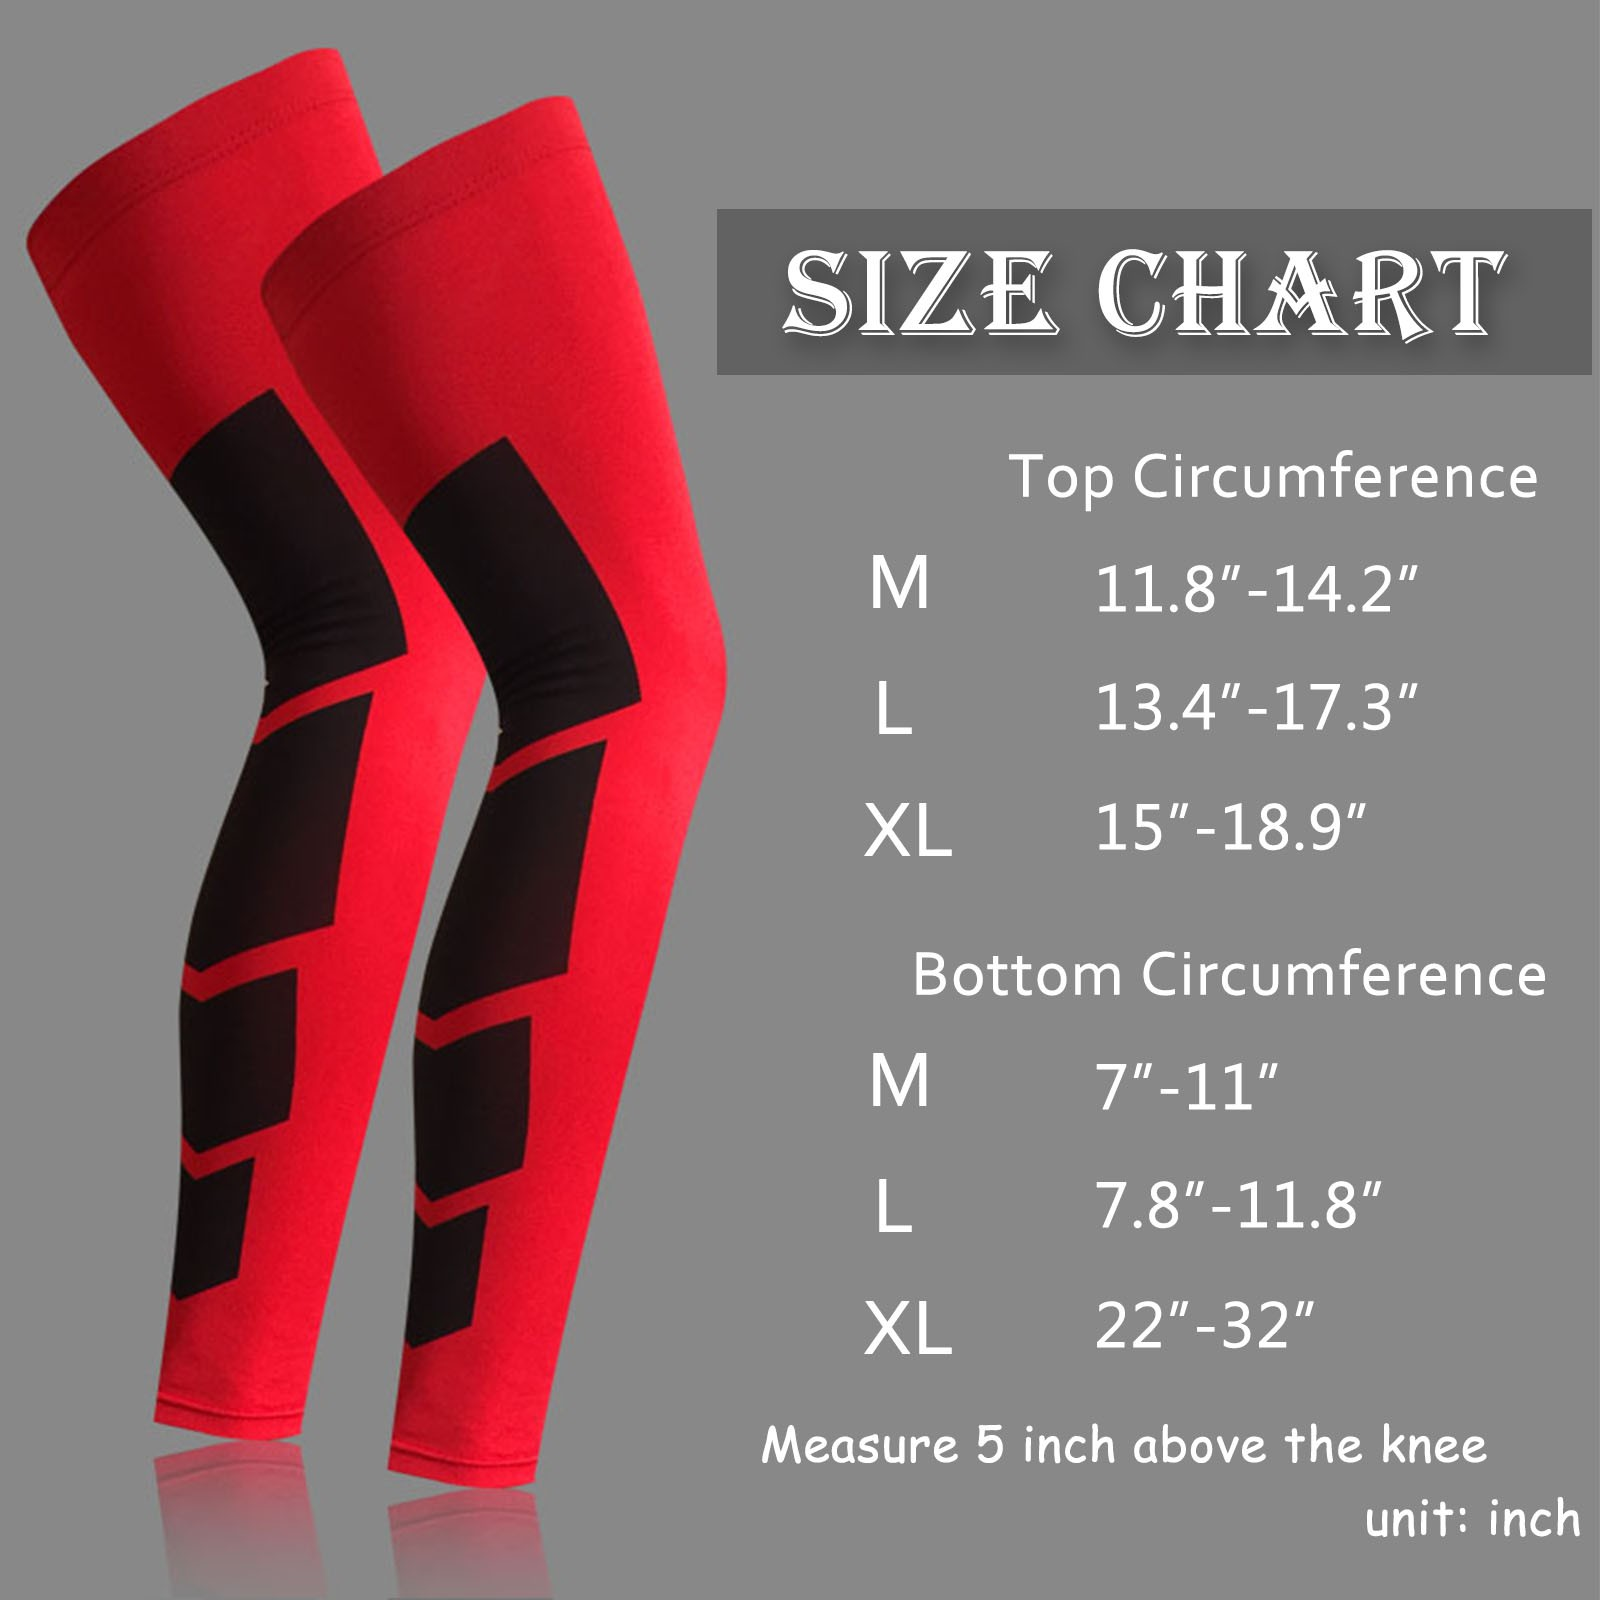 White Full Length Stretch Long Sleeve with Knee Support Women 1 Pair Compression Leg Sleeves for Men Non-Slip Inner Bands-M